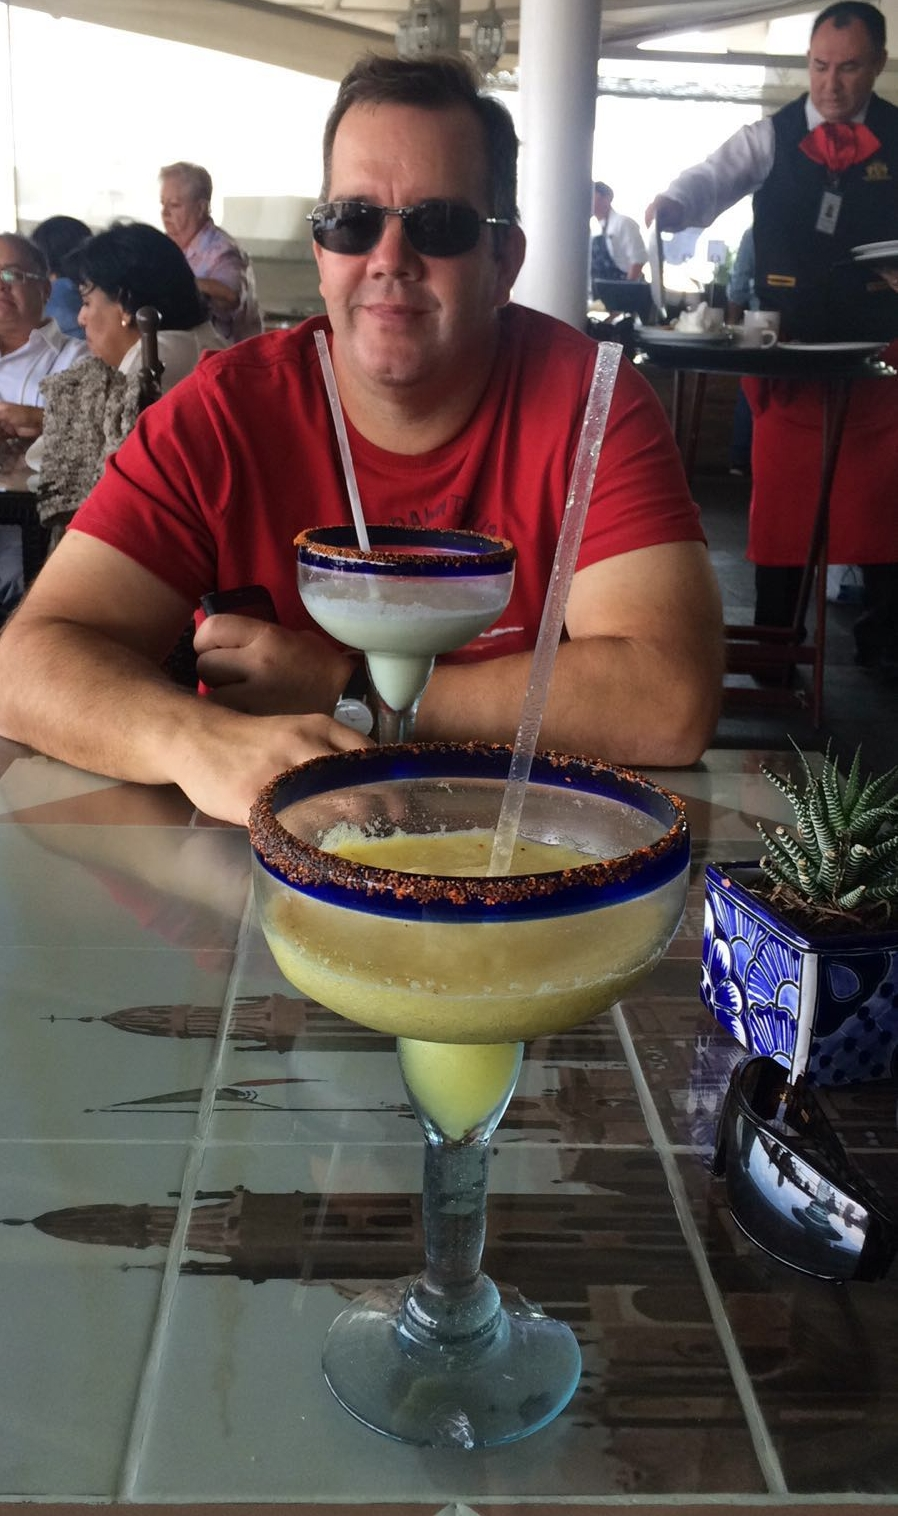 Two large frozen margaritas why not!